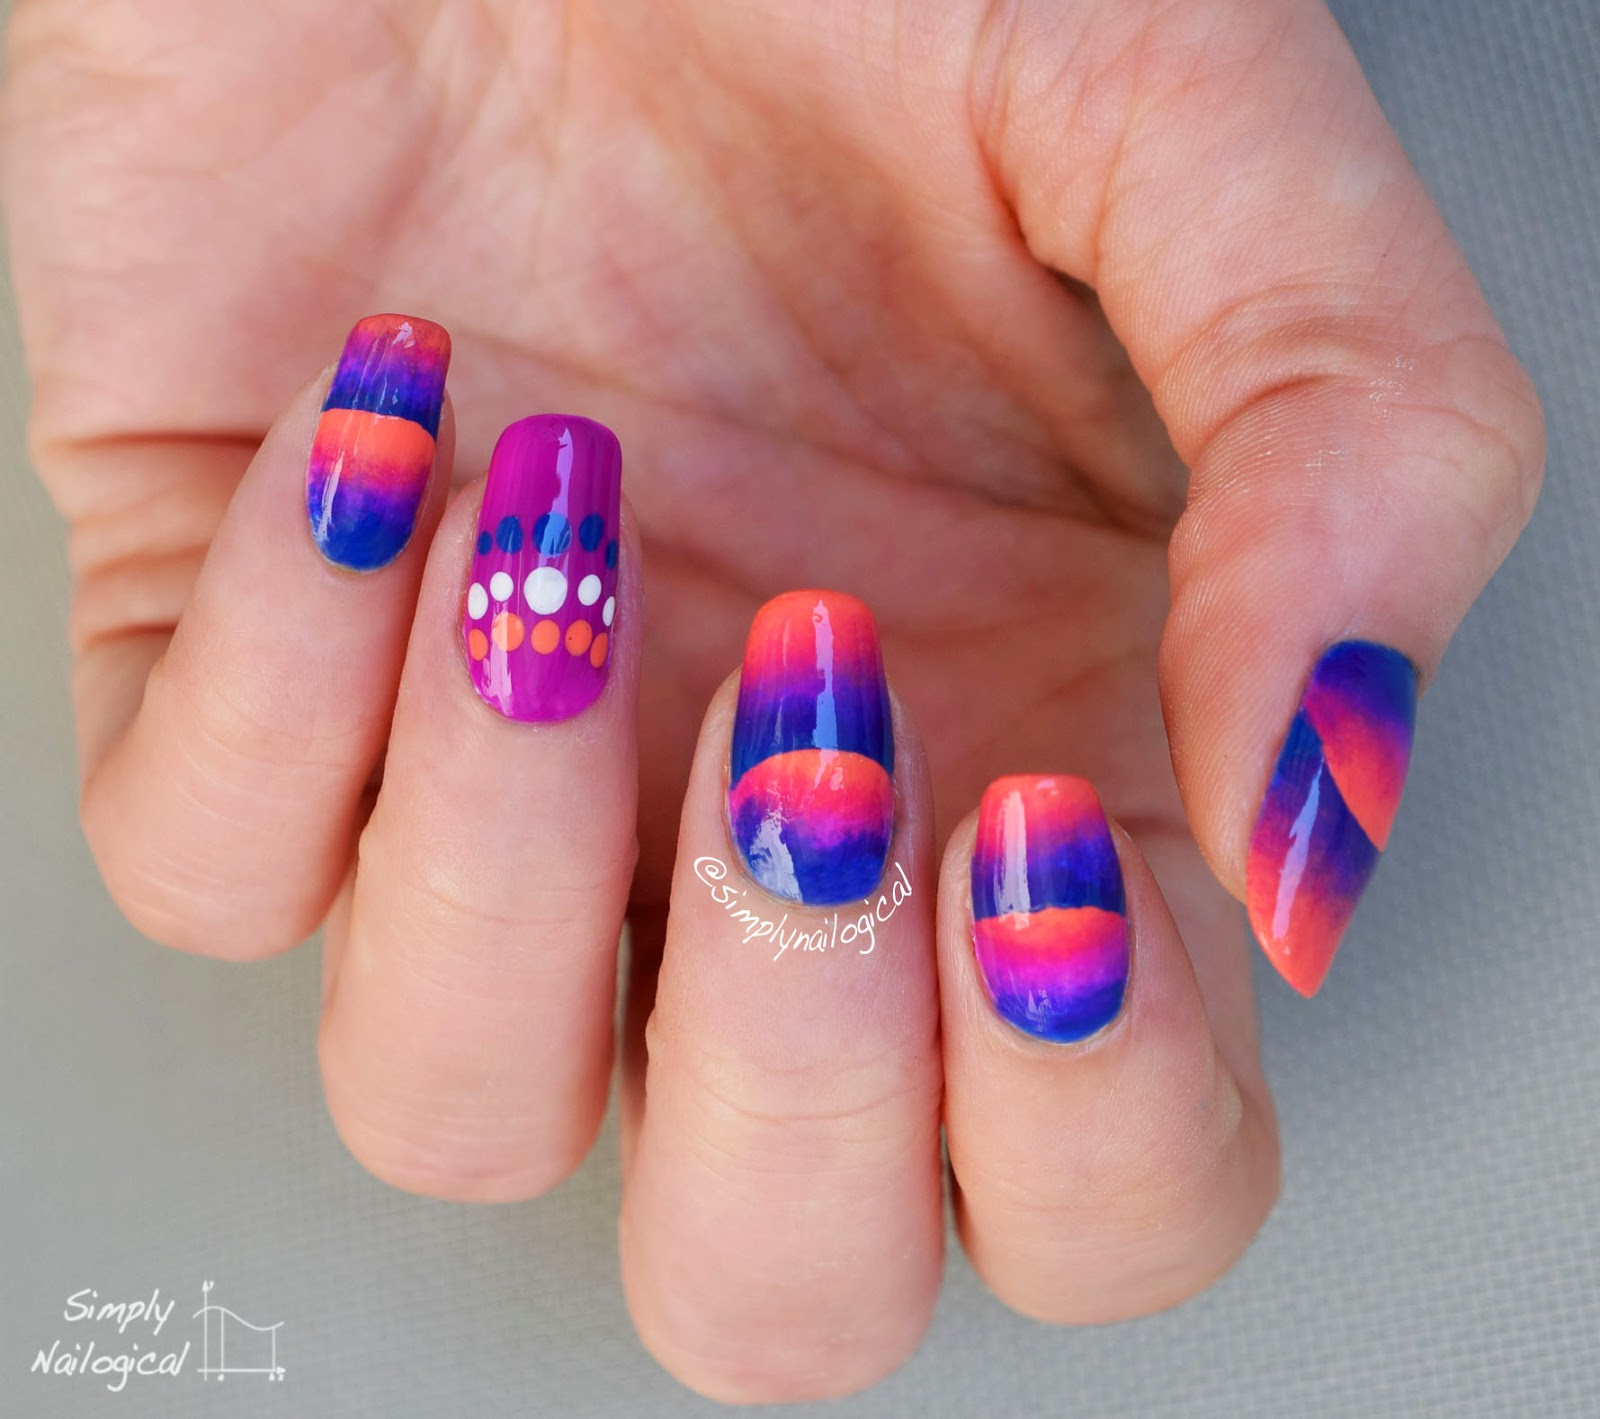 Simply Nailogical Nail Art: Guest Post From Cristine From Simply Nailogical